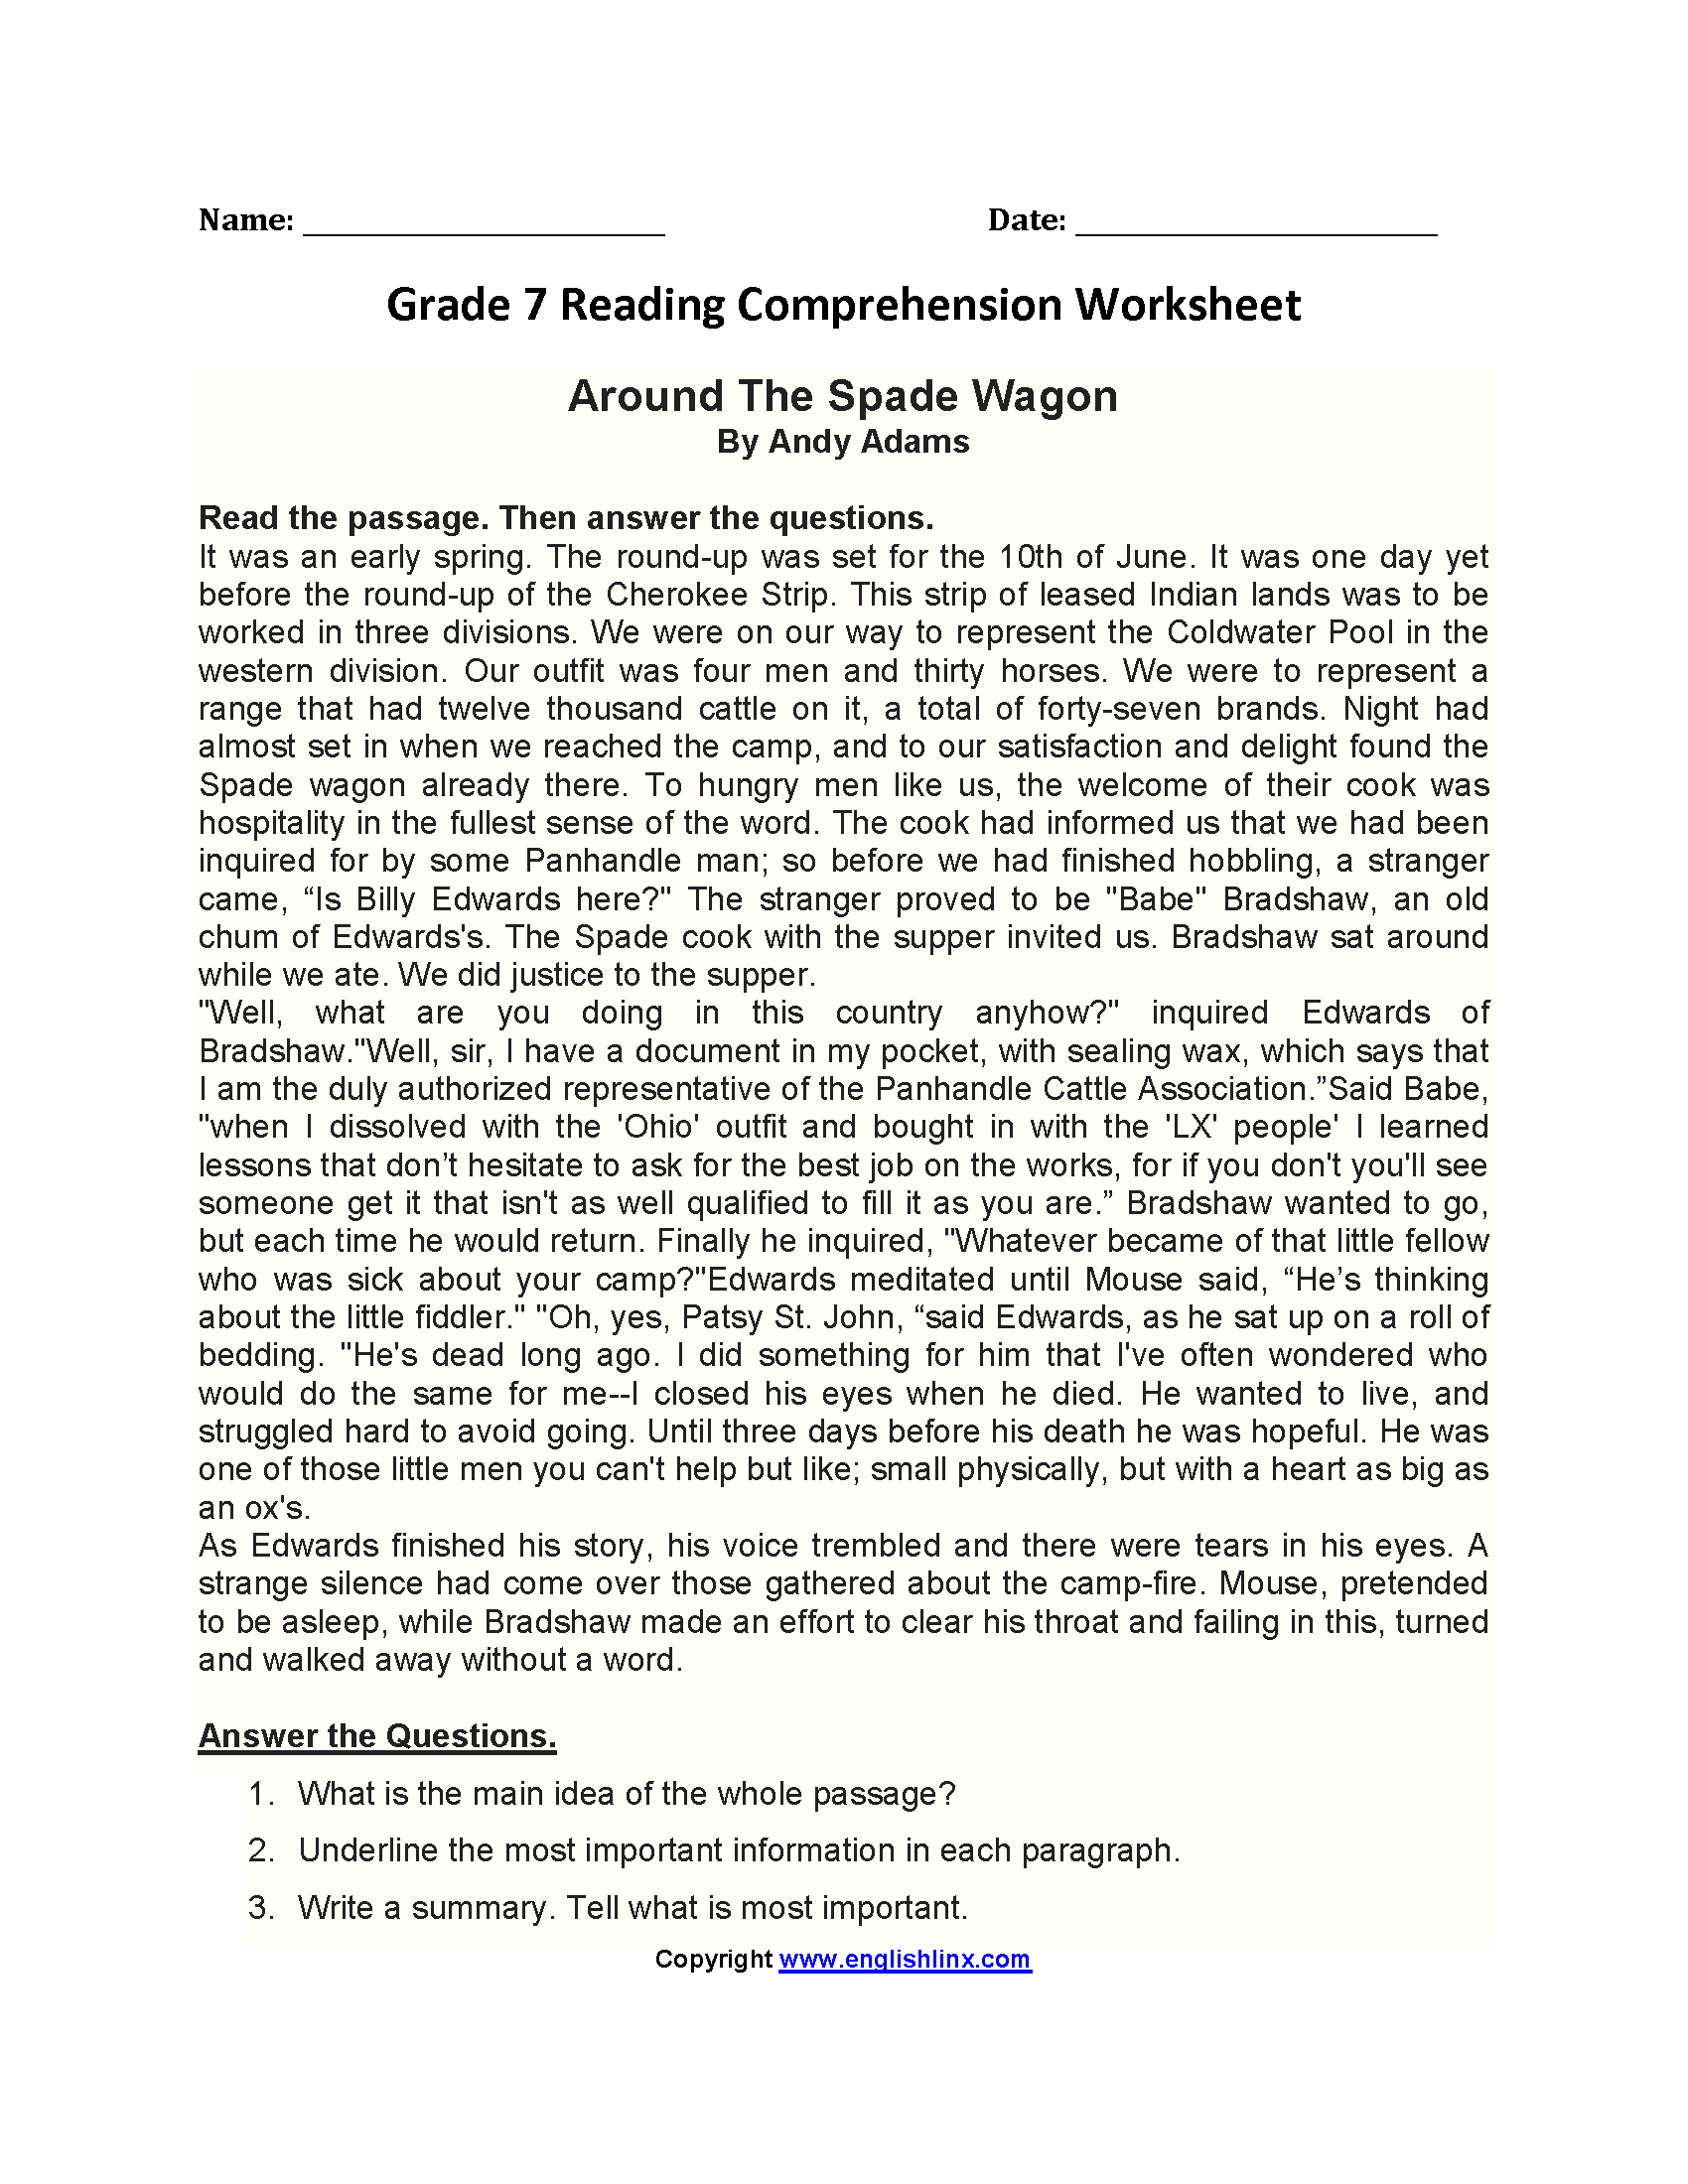 medium resolution of Around the Spade Wagon\u003cbr\u003eSeventh Grade Reading Worksheets   Reading  worksheets